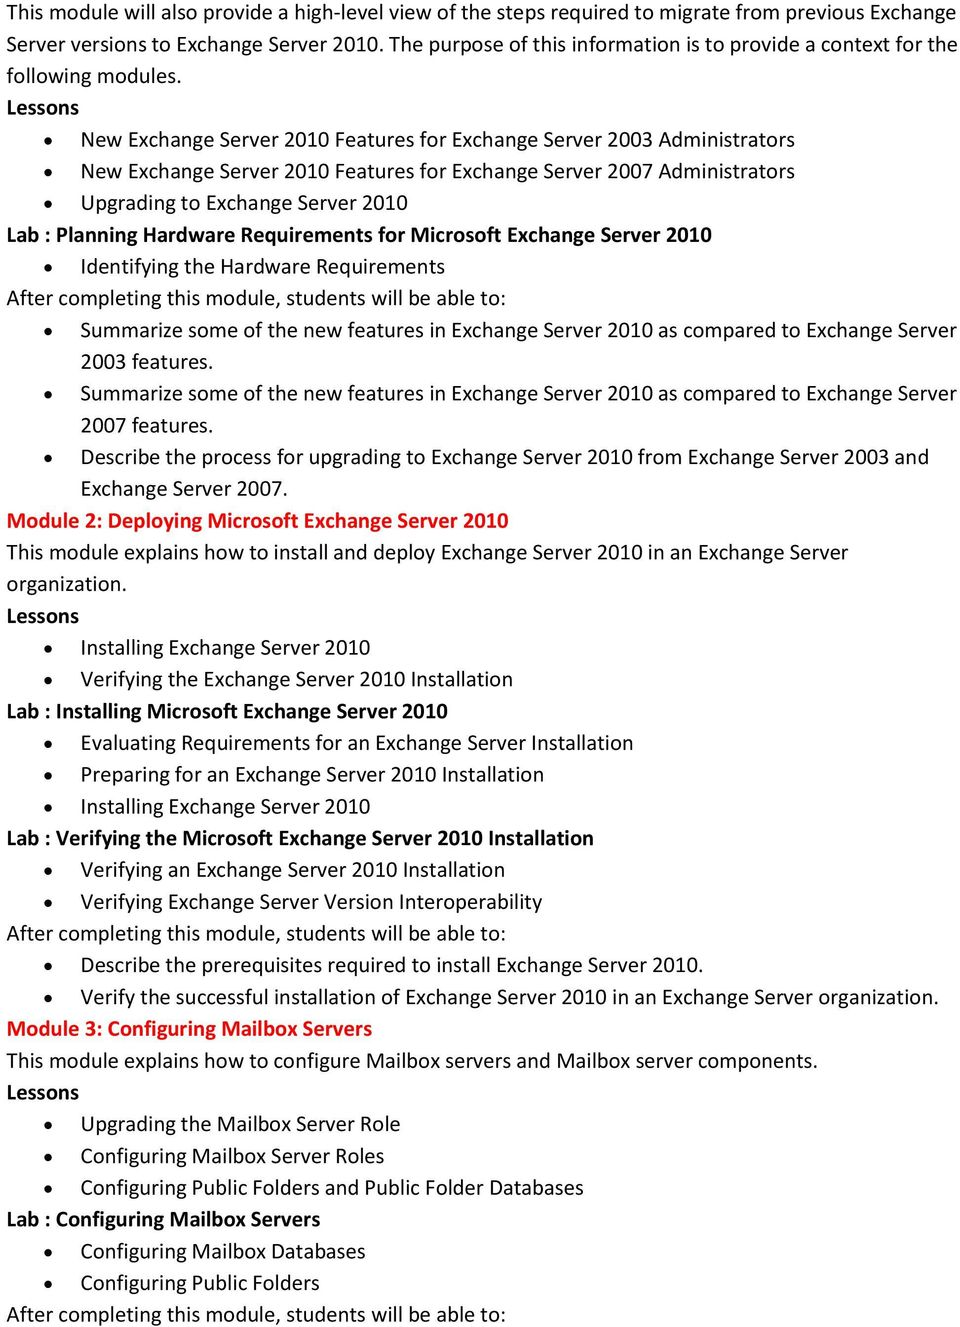 New Exchange Server 2010 Features for Exchange Server 2003 Administrators New Exchange Server 2010 Features for Exchange Server 2007 Administrators Upgrading to Exchange Server 2010 Lab : Planning